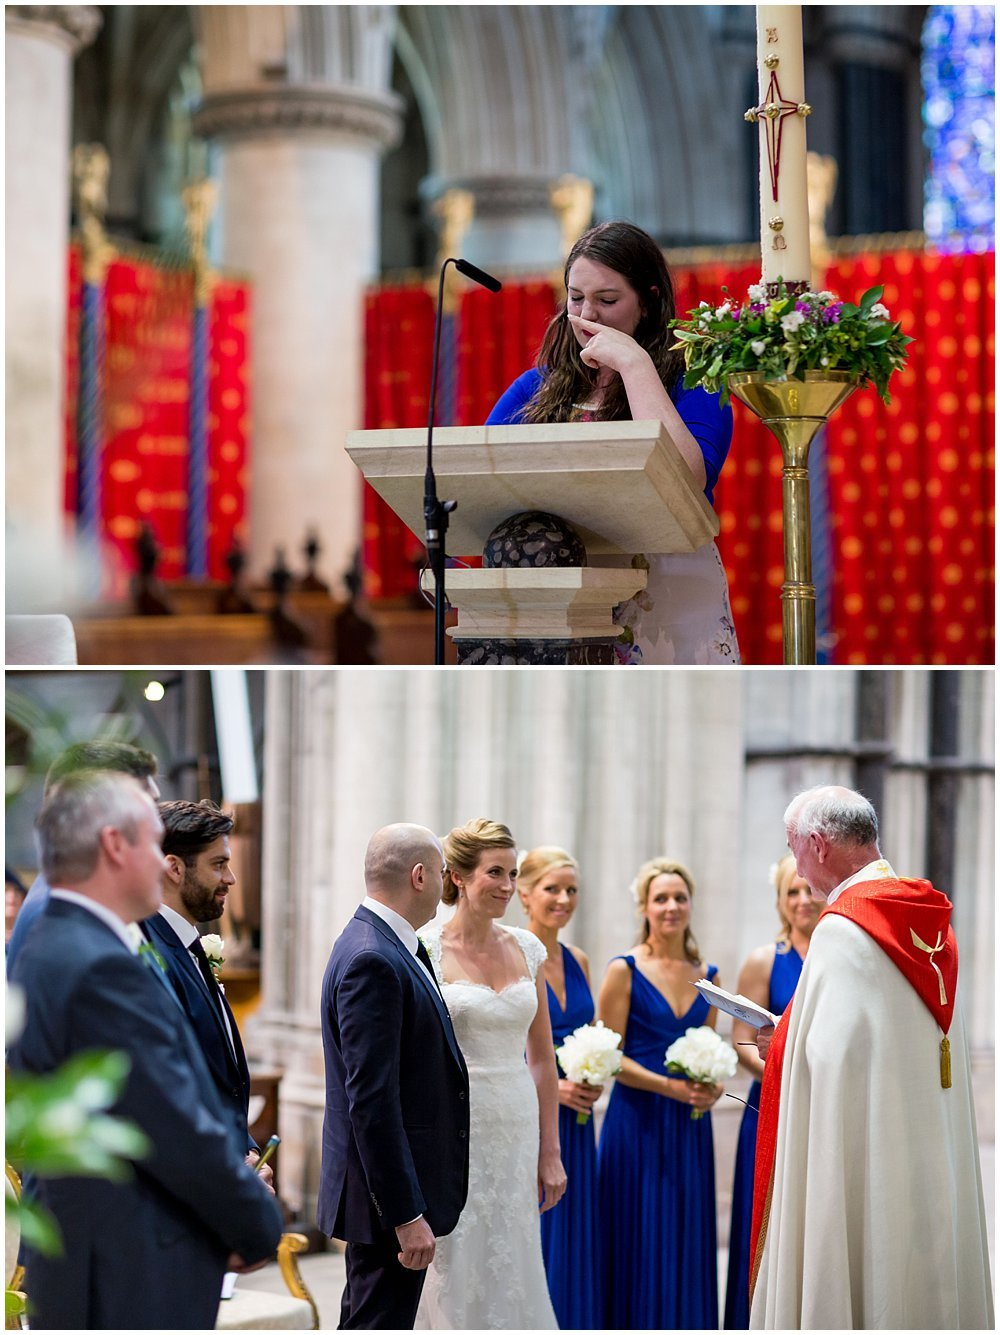 AMY AND DUNCAN NORWICH CATHEDRAL AND THE BOATHOUSE WEDDING - NORWICH AND NORFOLK WEDDING PHOTOGRAPHER 14